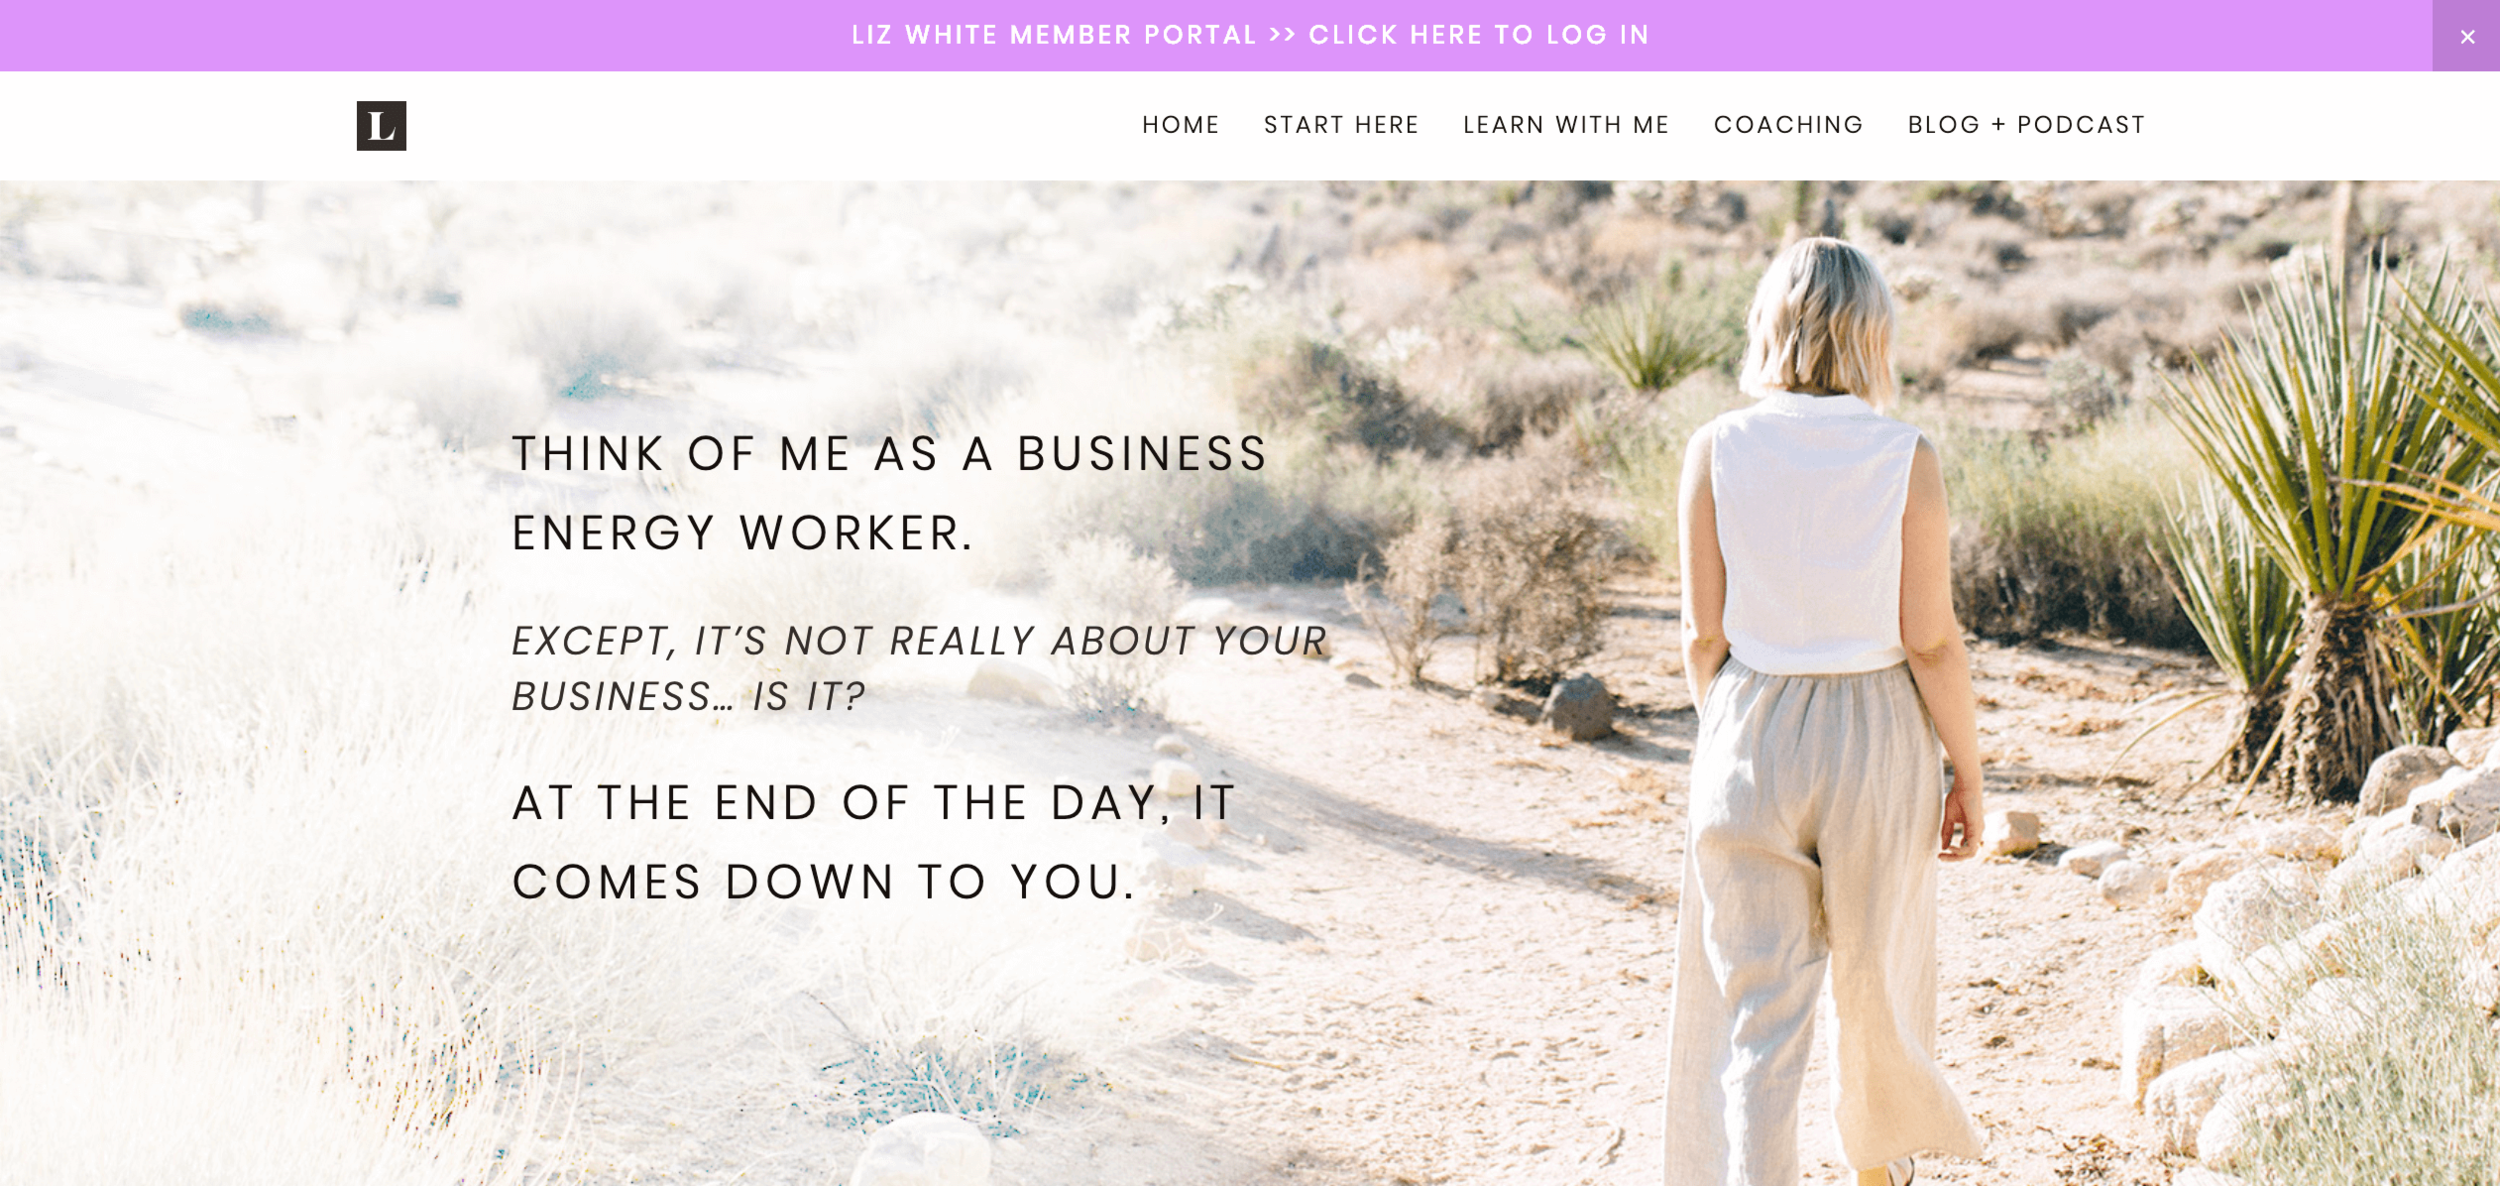 10 Squarespace inspiration websites for coaches6.png